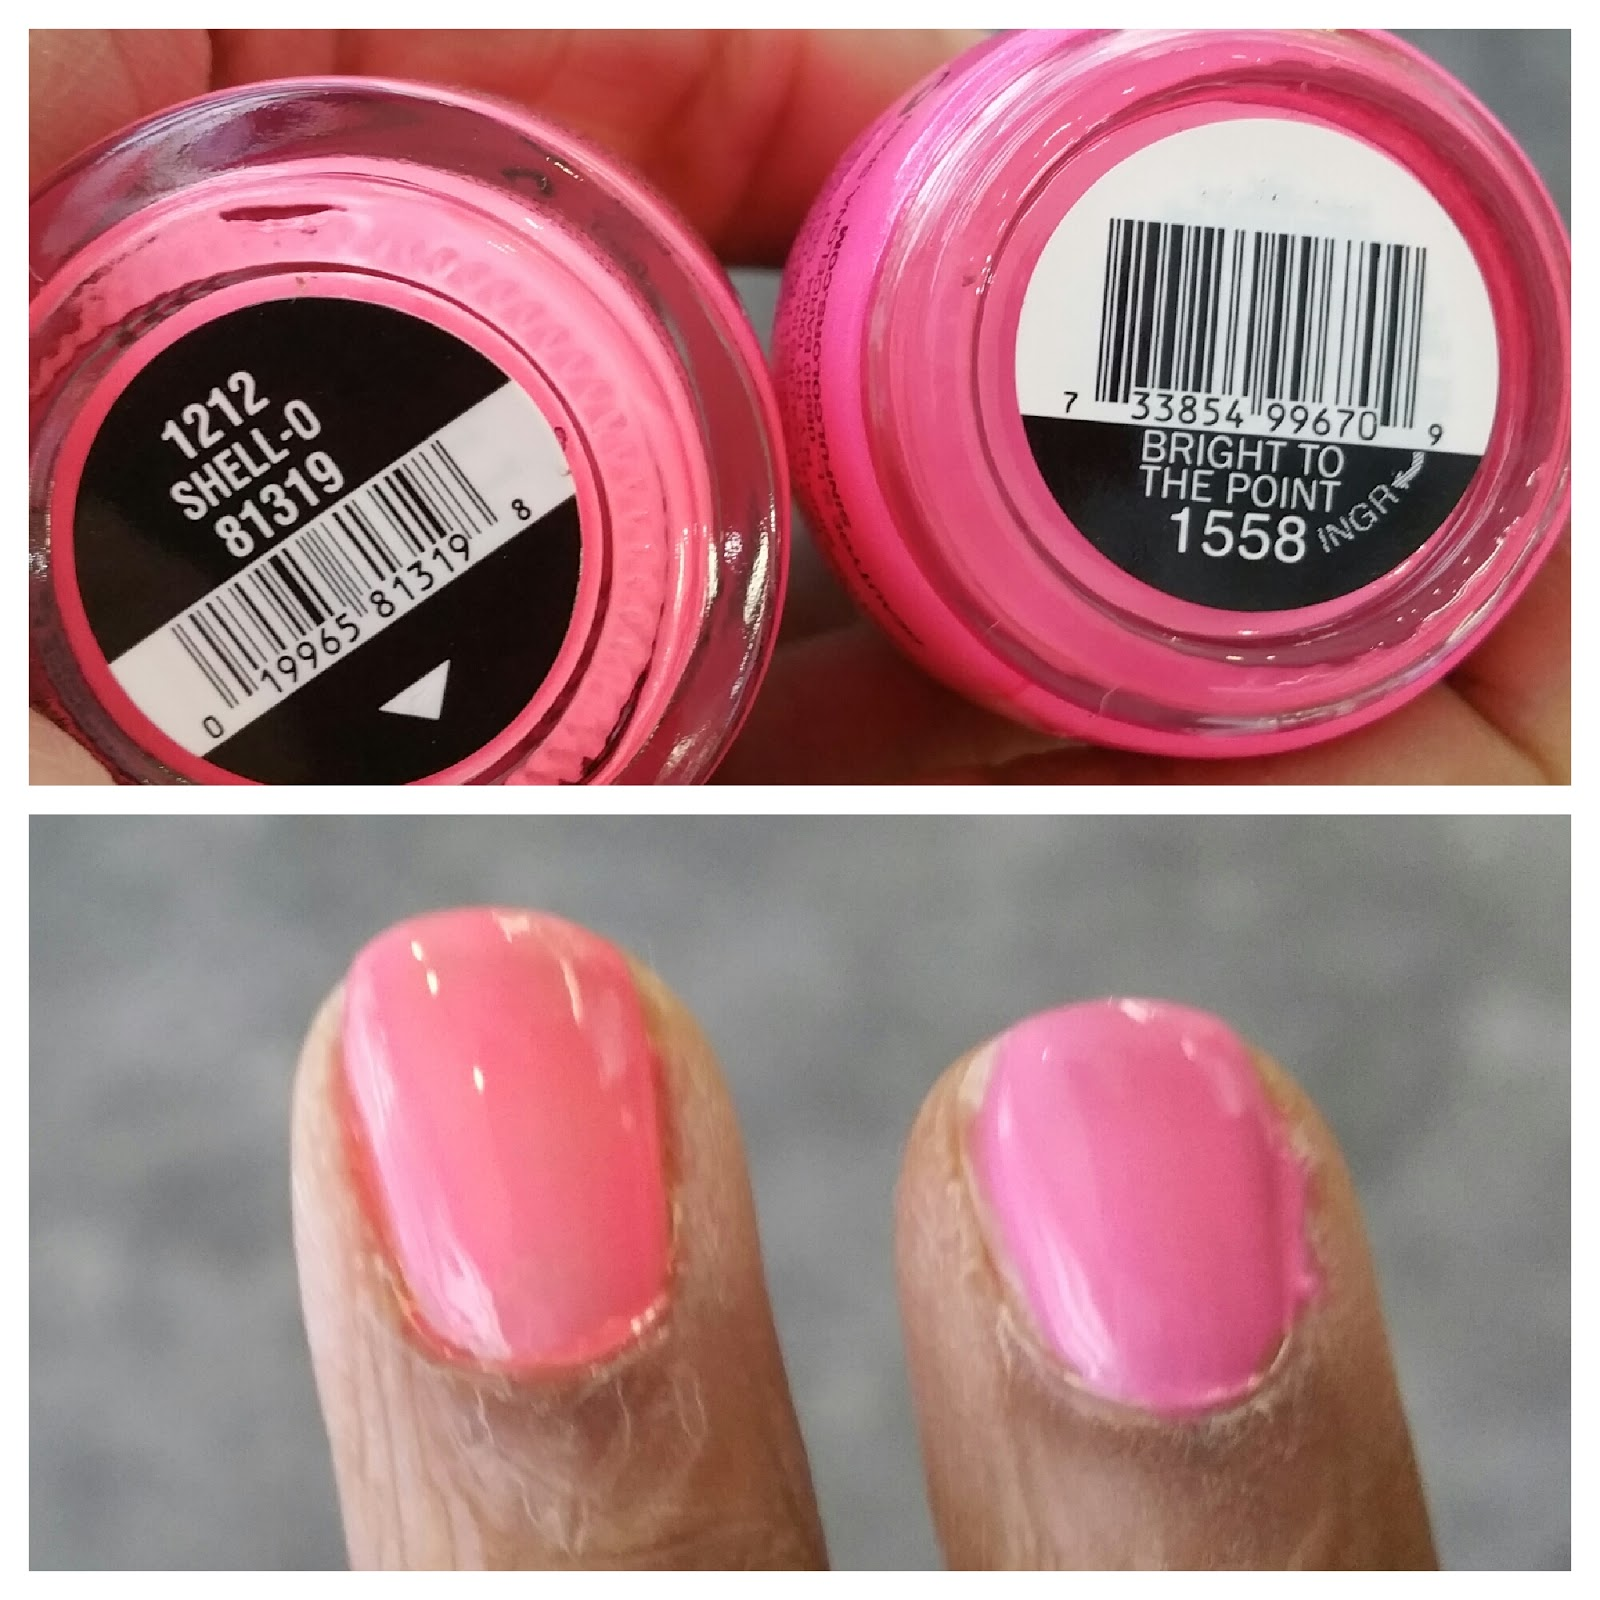 Beauty on a Budget: Sinful Colors Neon Nailpolish